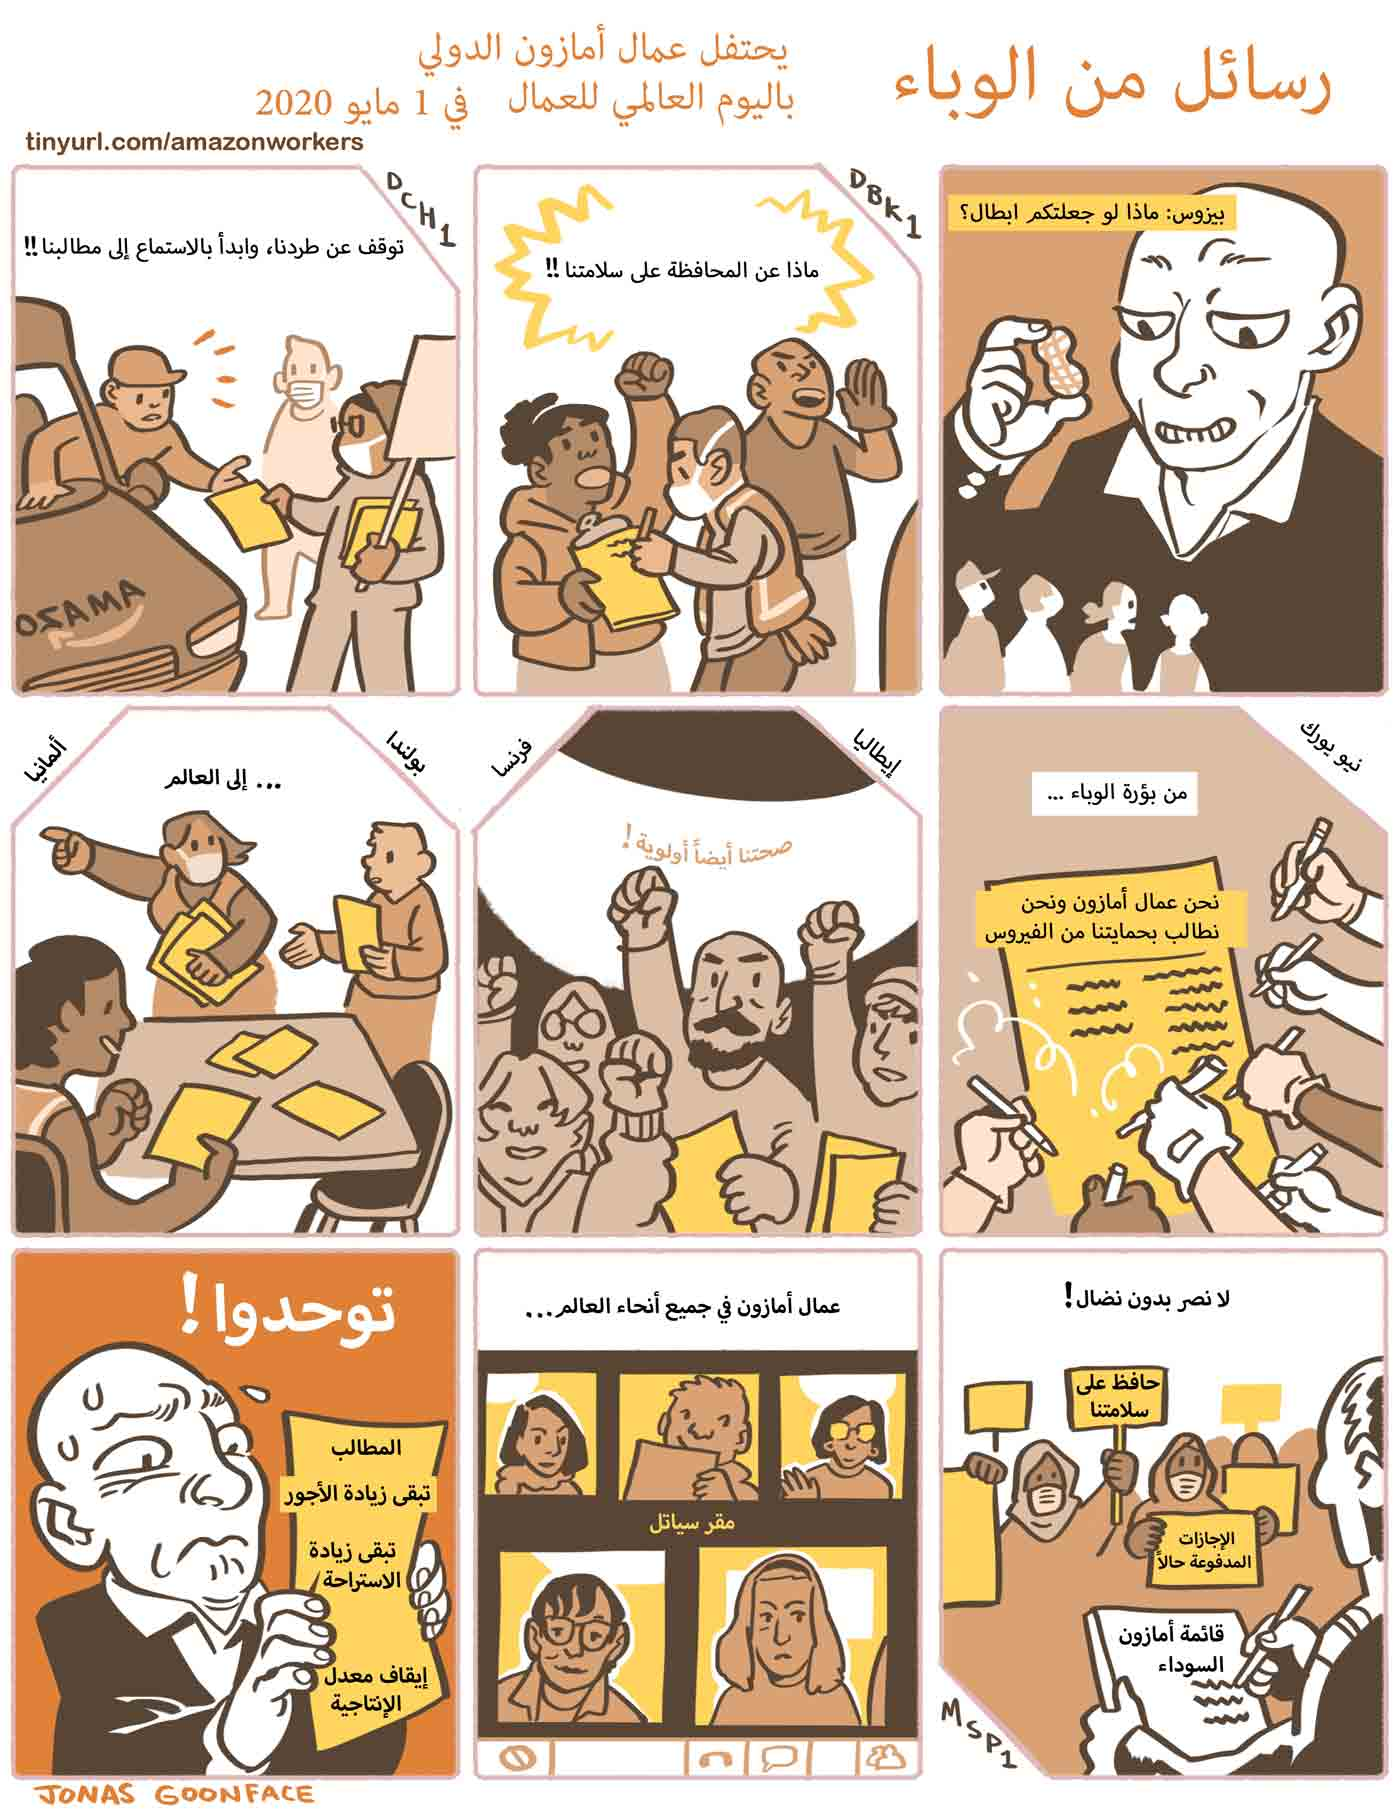 """Comic in Arabic entitled """"Postcards from the Pandemic"""" for Amazon Workers International. Jeff Bezos offers workers the 'peanut' of calling the workers heroes. The workers counter with demands for safety. Amazonians of the World, Unite!"""